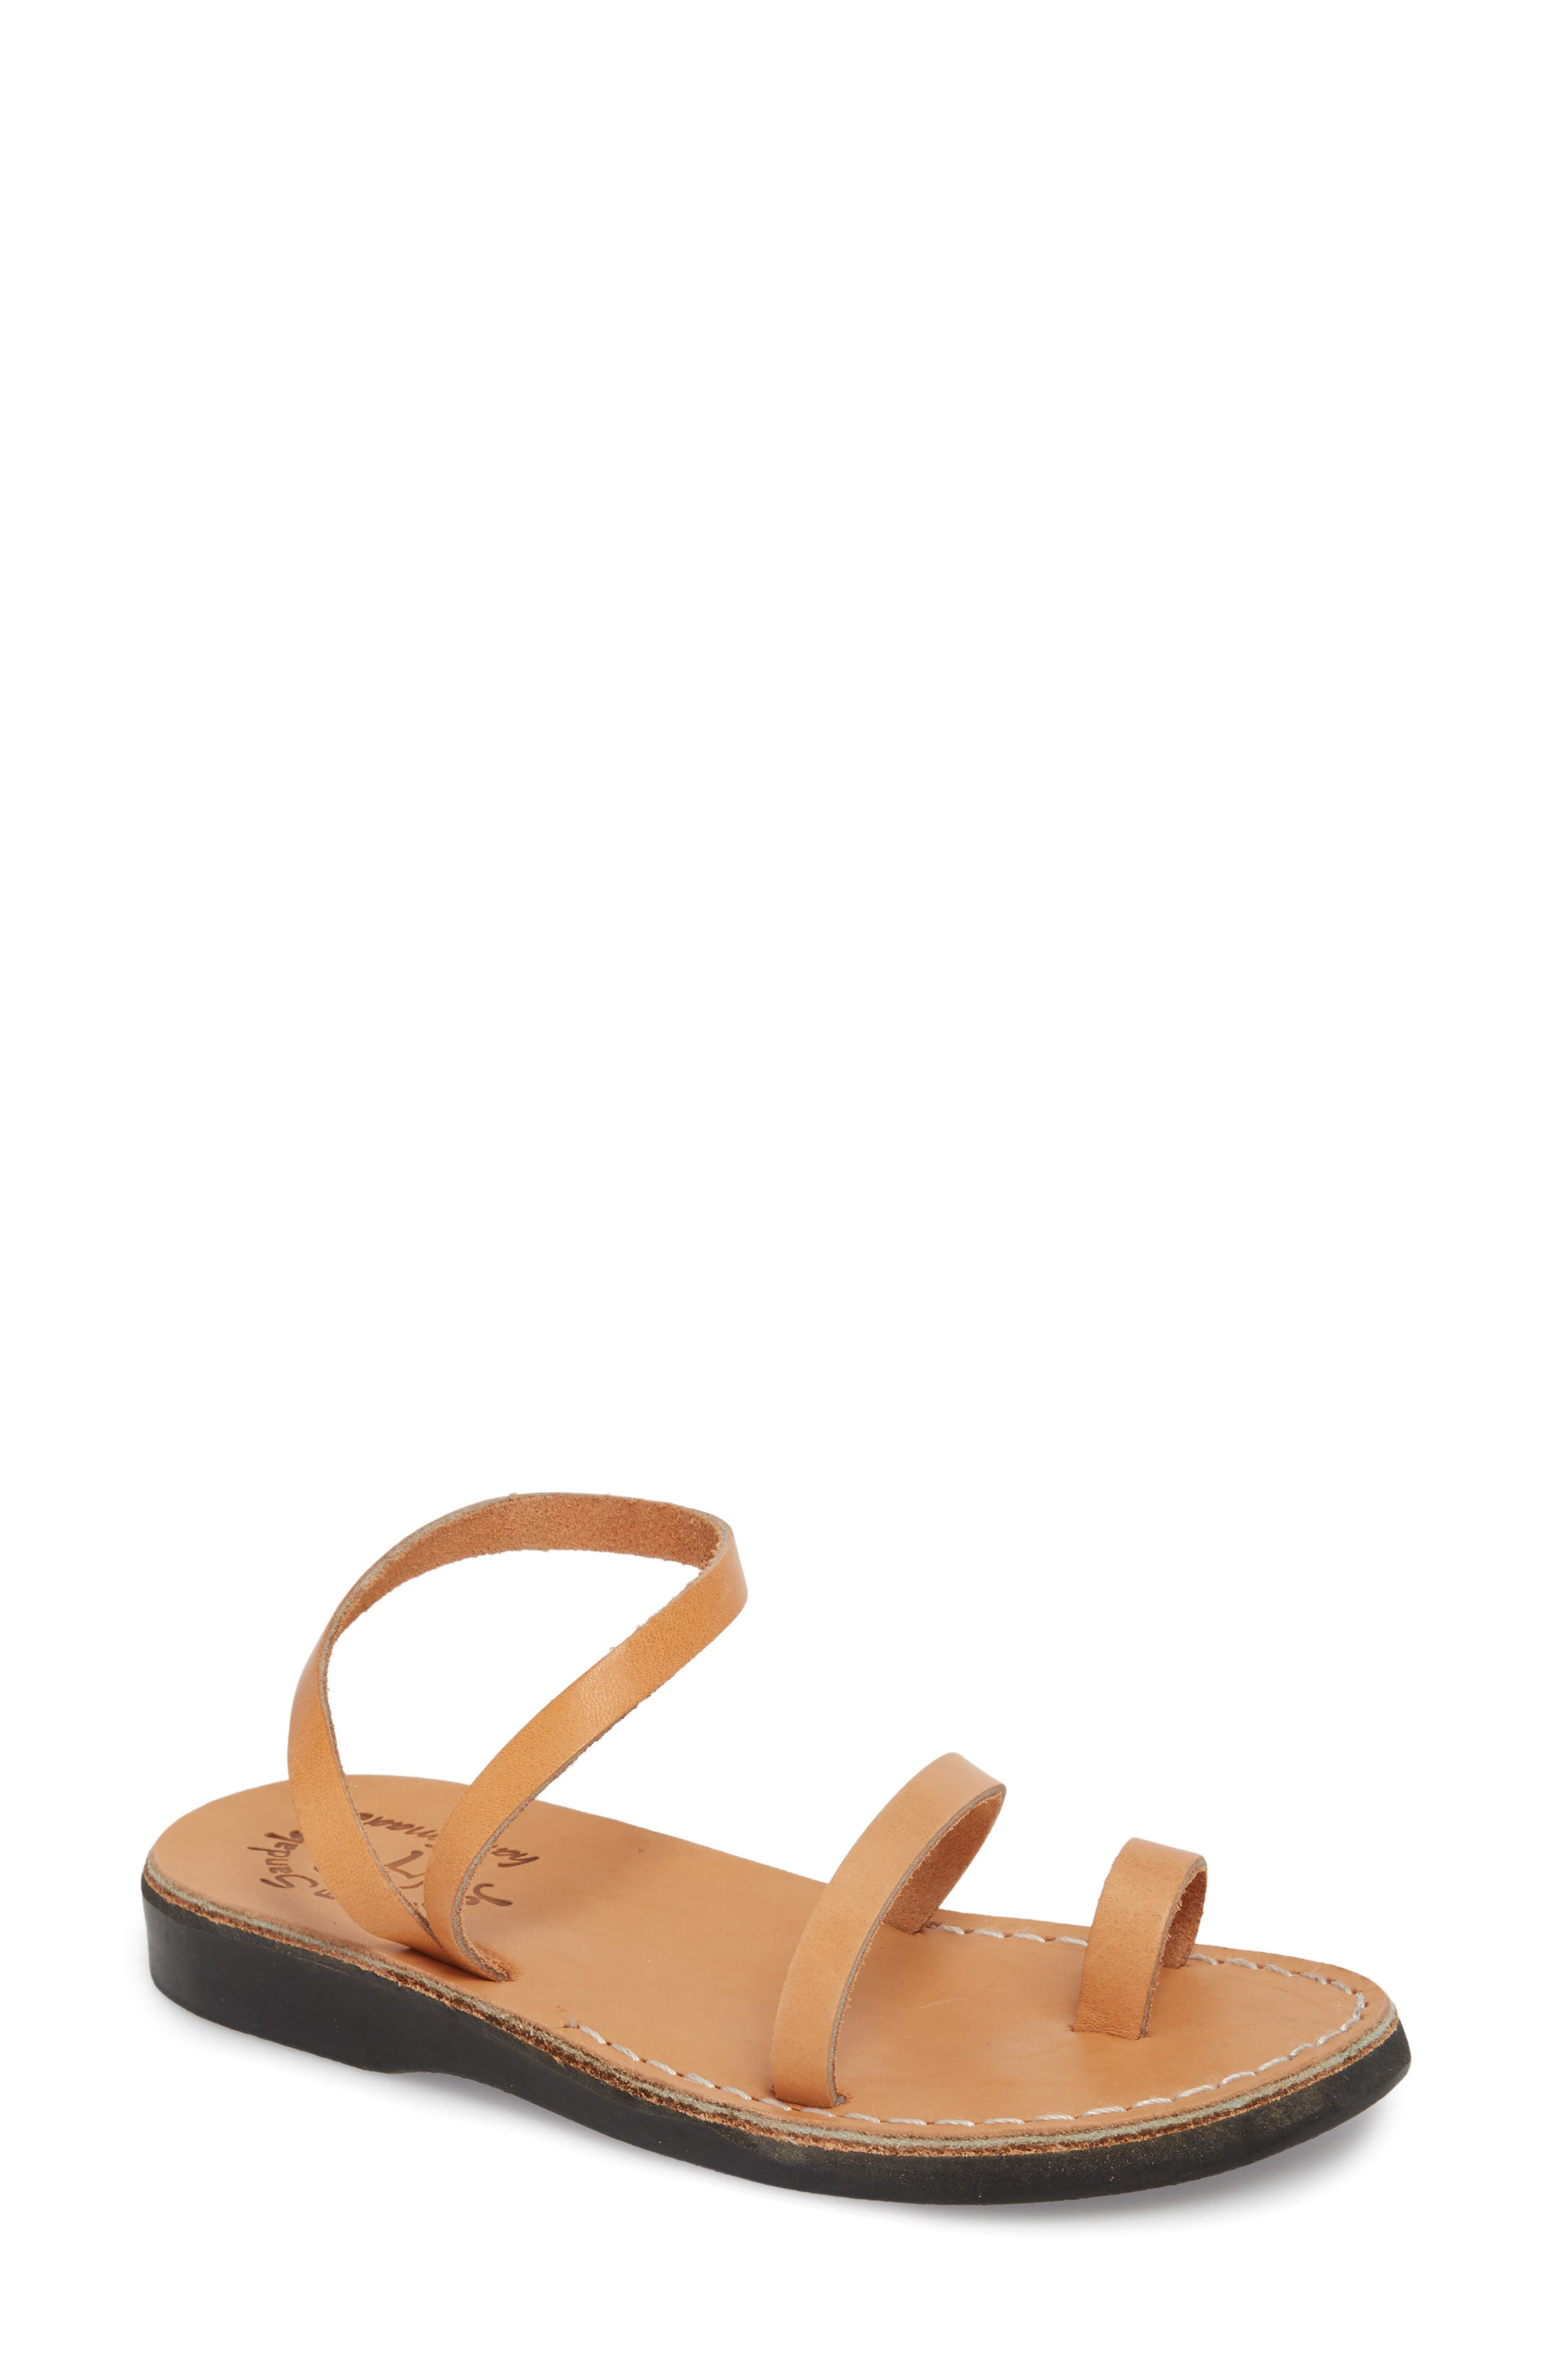 Designed as a tribute to 2,000-year-old footwear found at archaeological digs in the Middle East, these natural-leather sandals are handmade in Israel by skilled craftsmen. We\\\'re not saying that they\\\'ll last for 40 years in the wilderness, but they sure are comfortable. Style Name: Jerusalem Sandals Ella Sandal (Women). Style Number: 5530851 1. Available in stores.